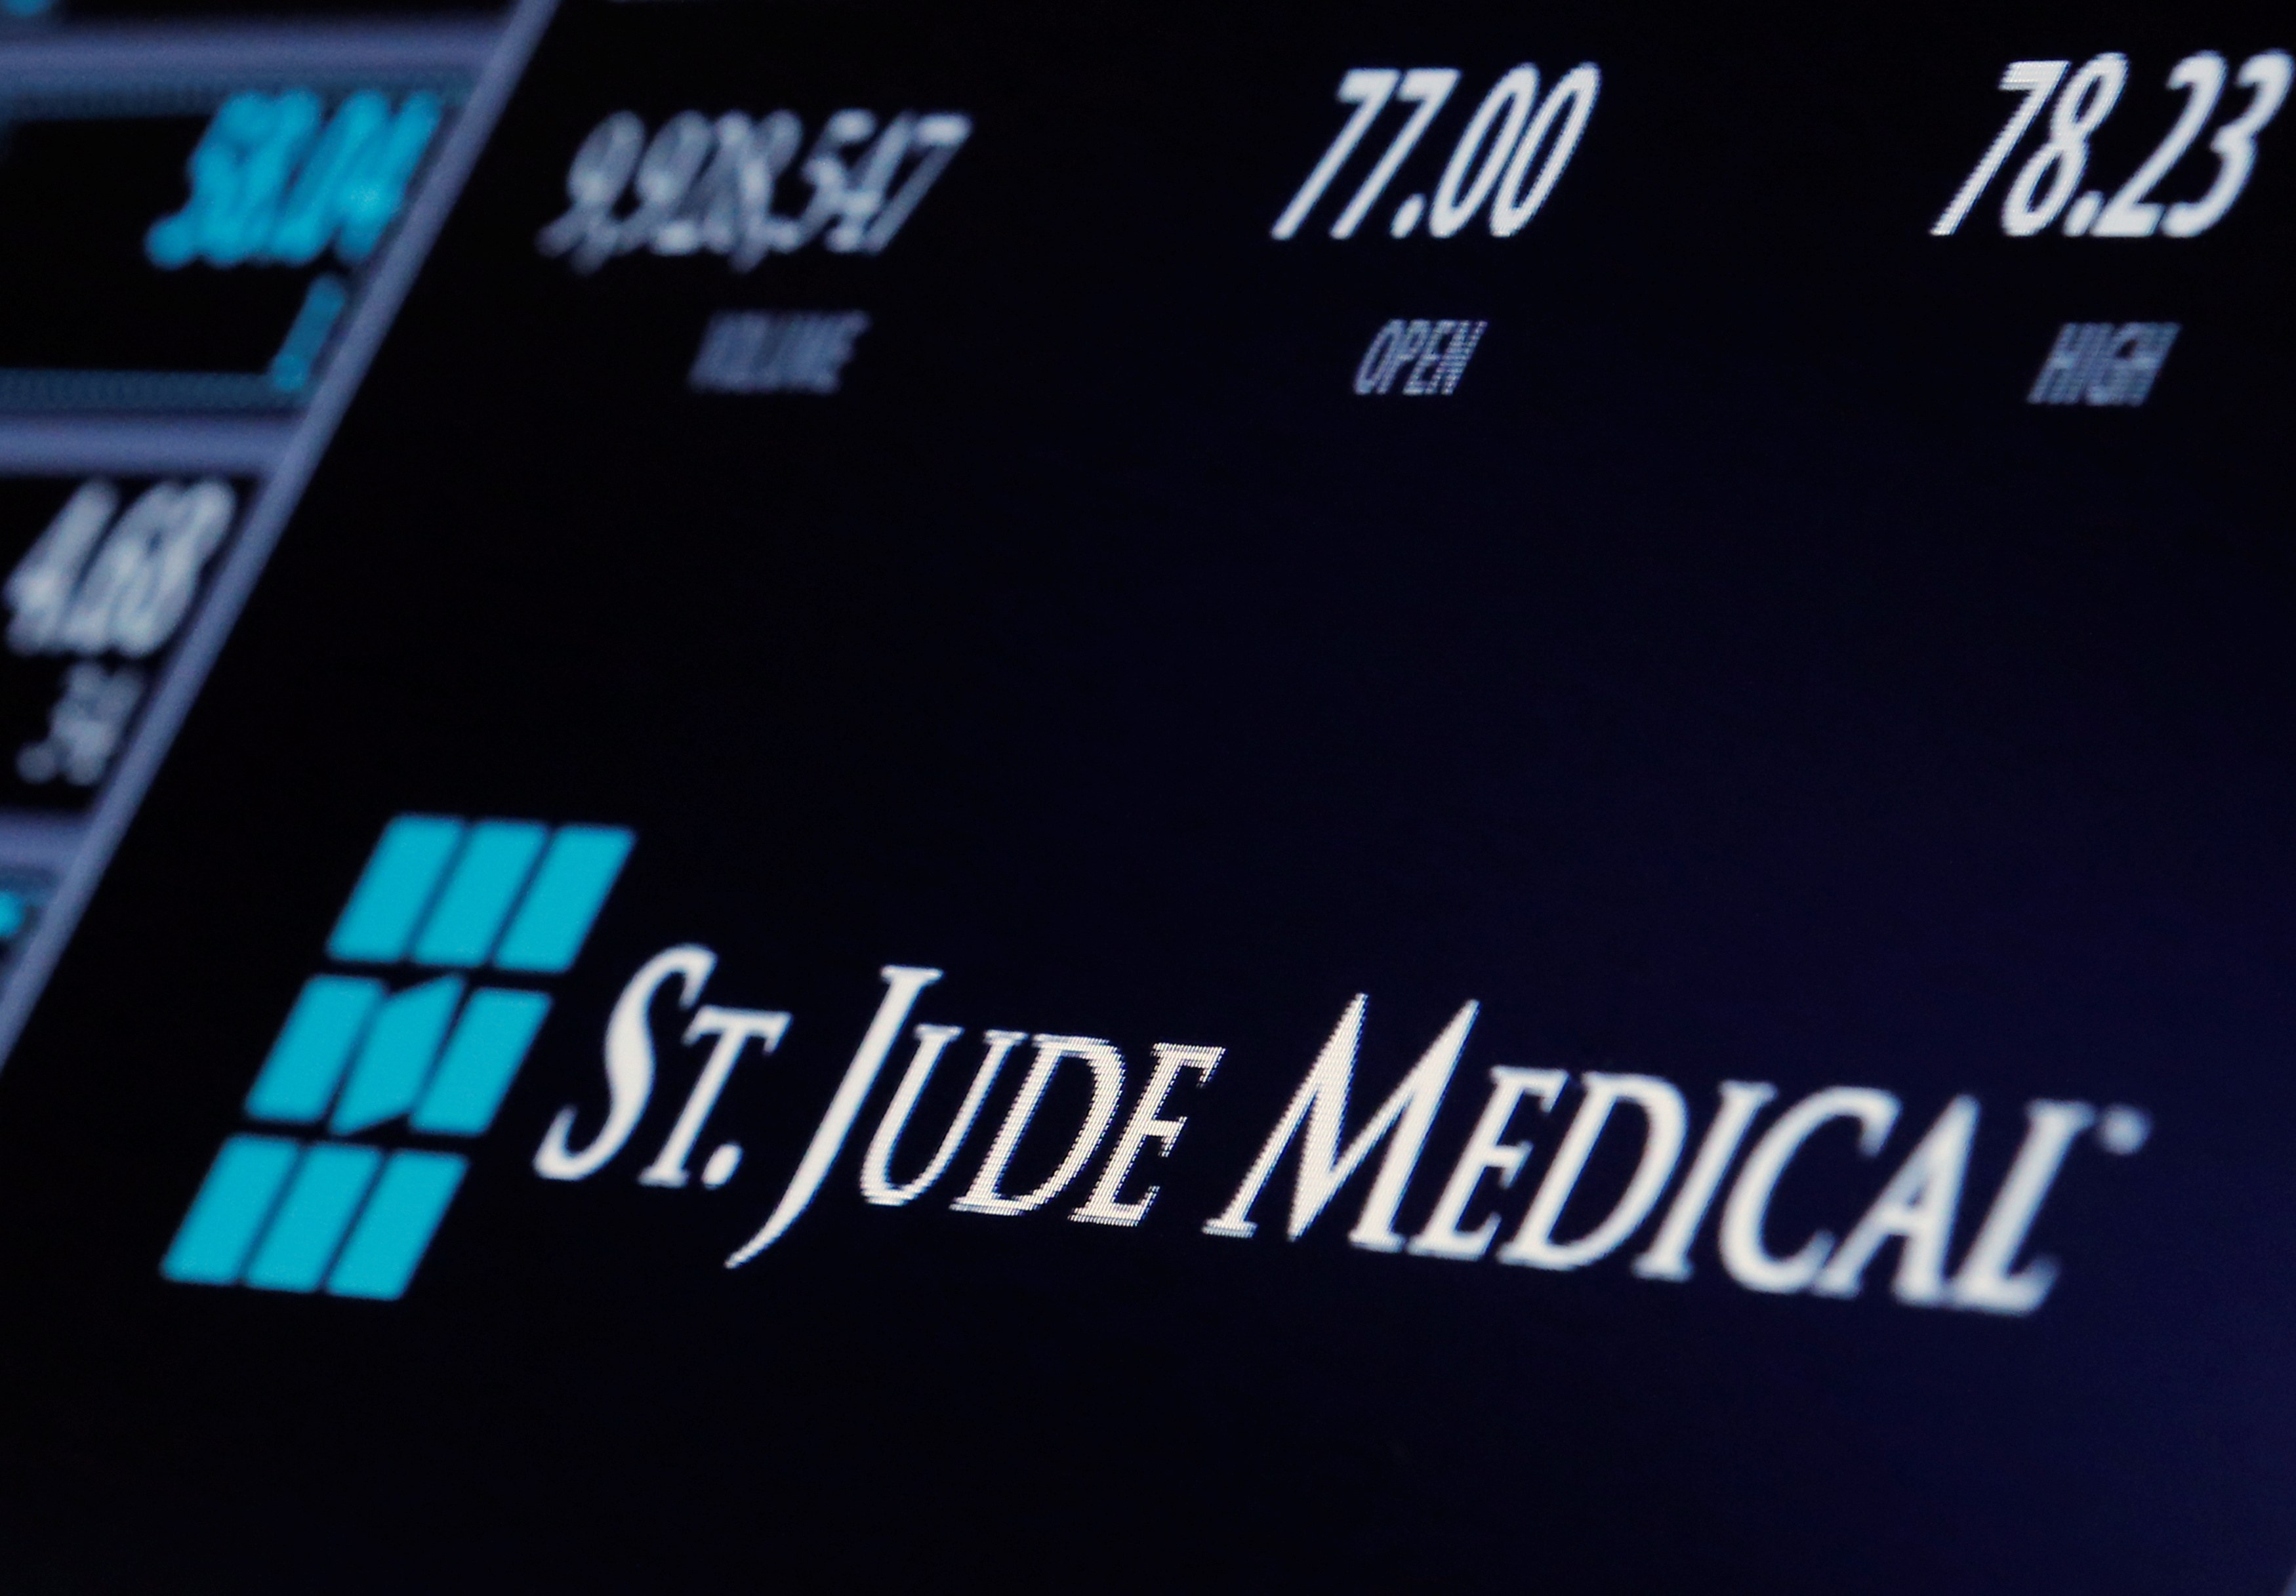 The ticker and trading information for St. Jude Medical is displayed where the stock is traded on the floor of the New York Stock Exchange.